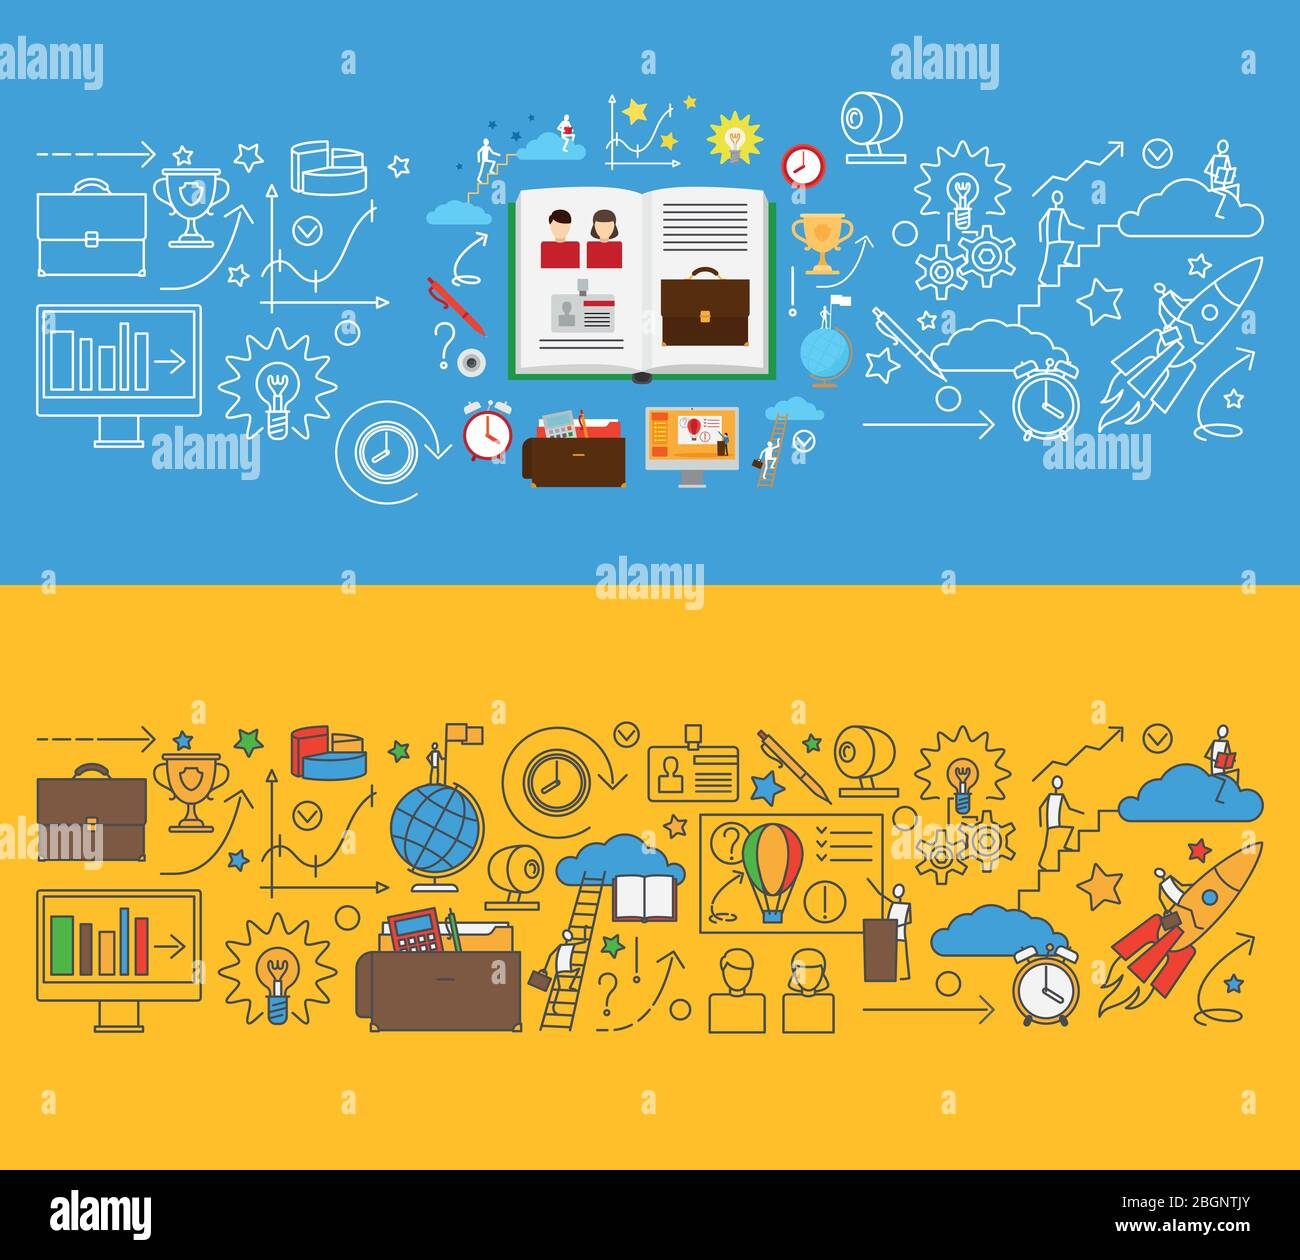 Online Education And Online Learning Templates For Web Banners Vector Illustration Stock Vector Image Art Alamy